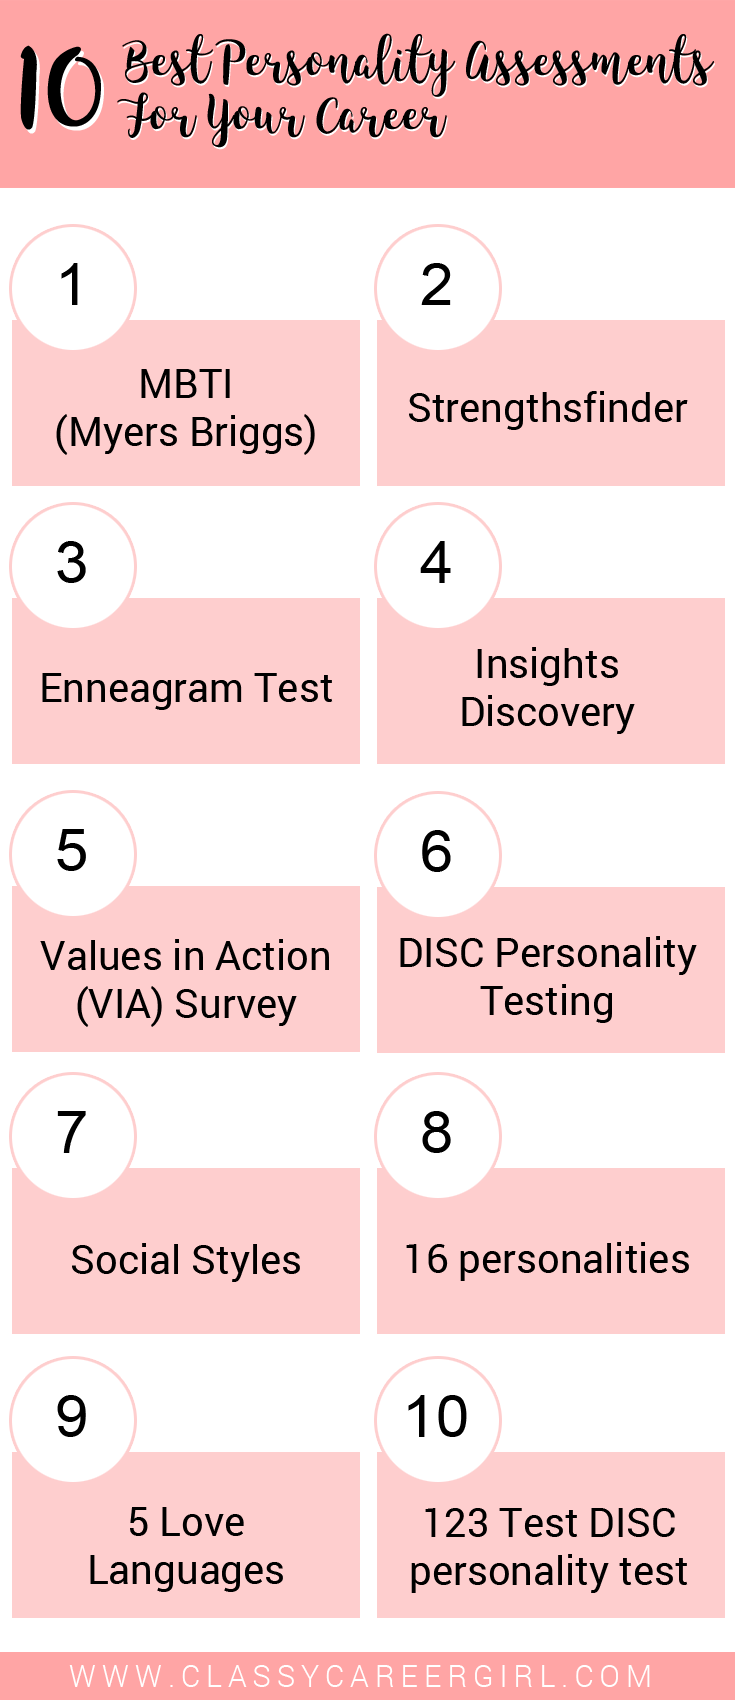 10 best personality assessments for your career